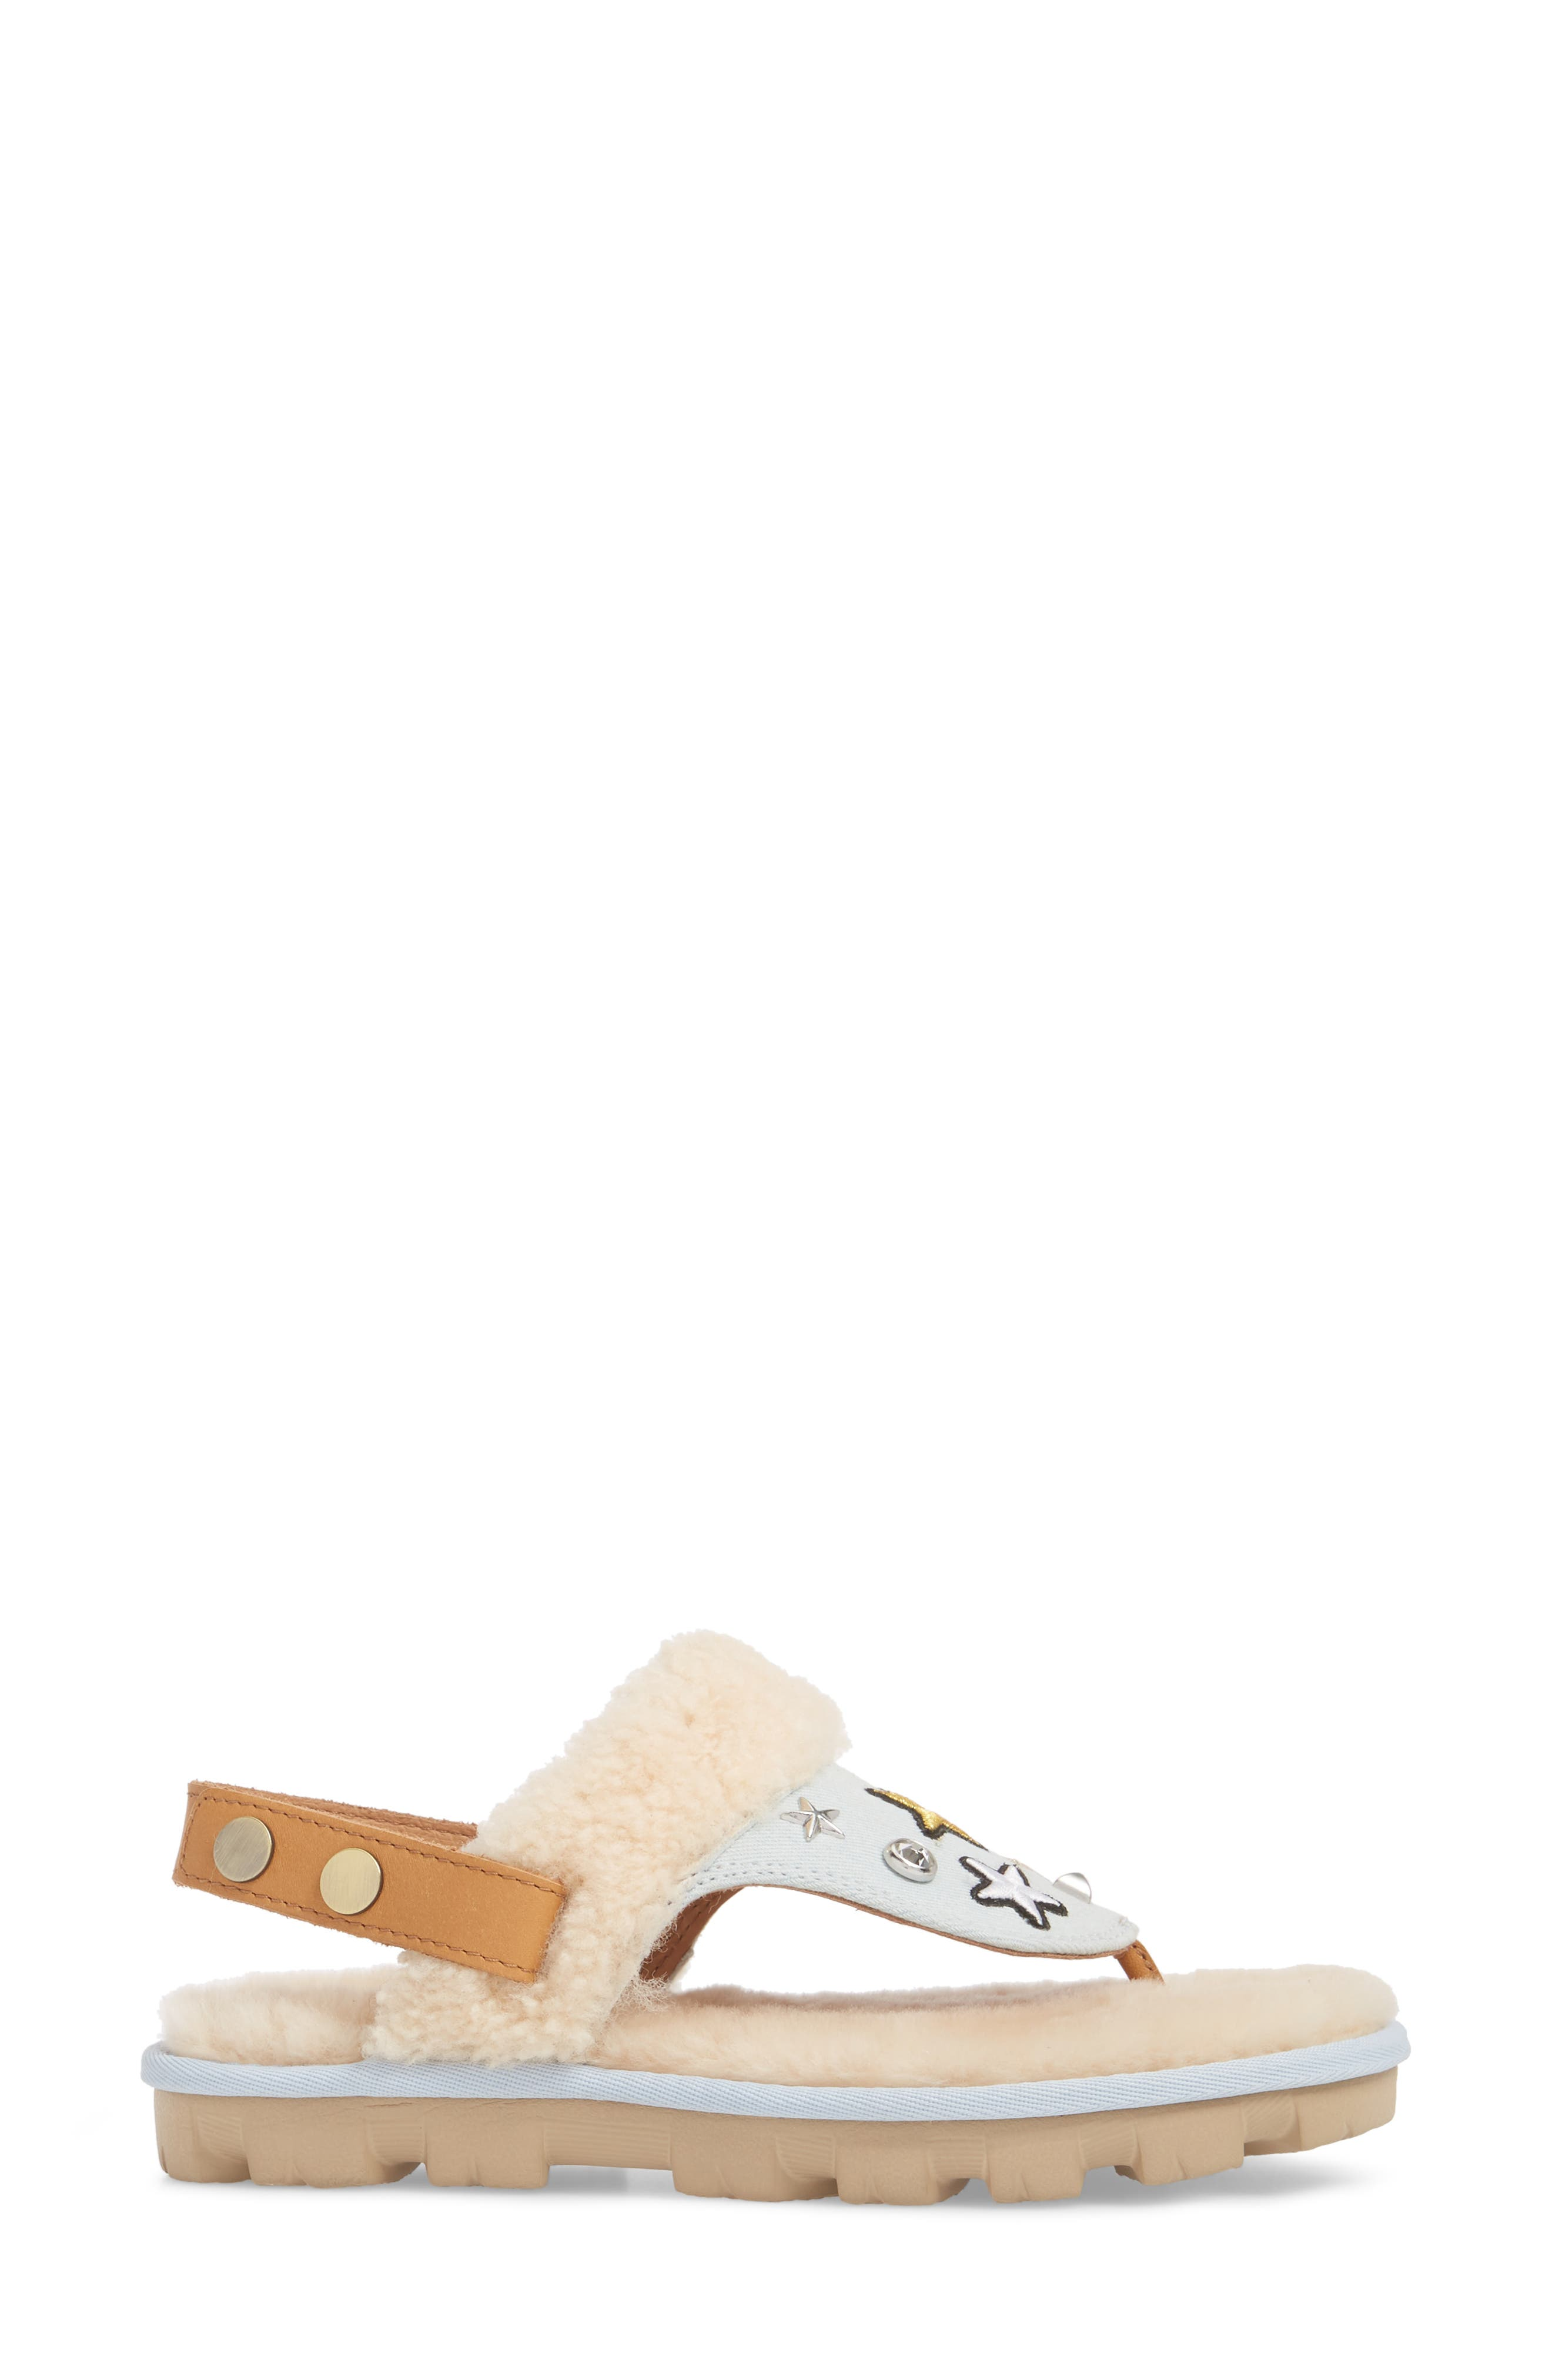 Patch It Slingback Sandal with Genuine Shearling Trim,                             Alternate thumbnail 3, color,                             BLEACH DENIM